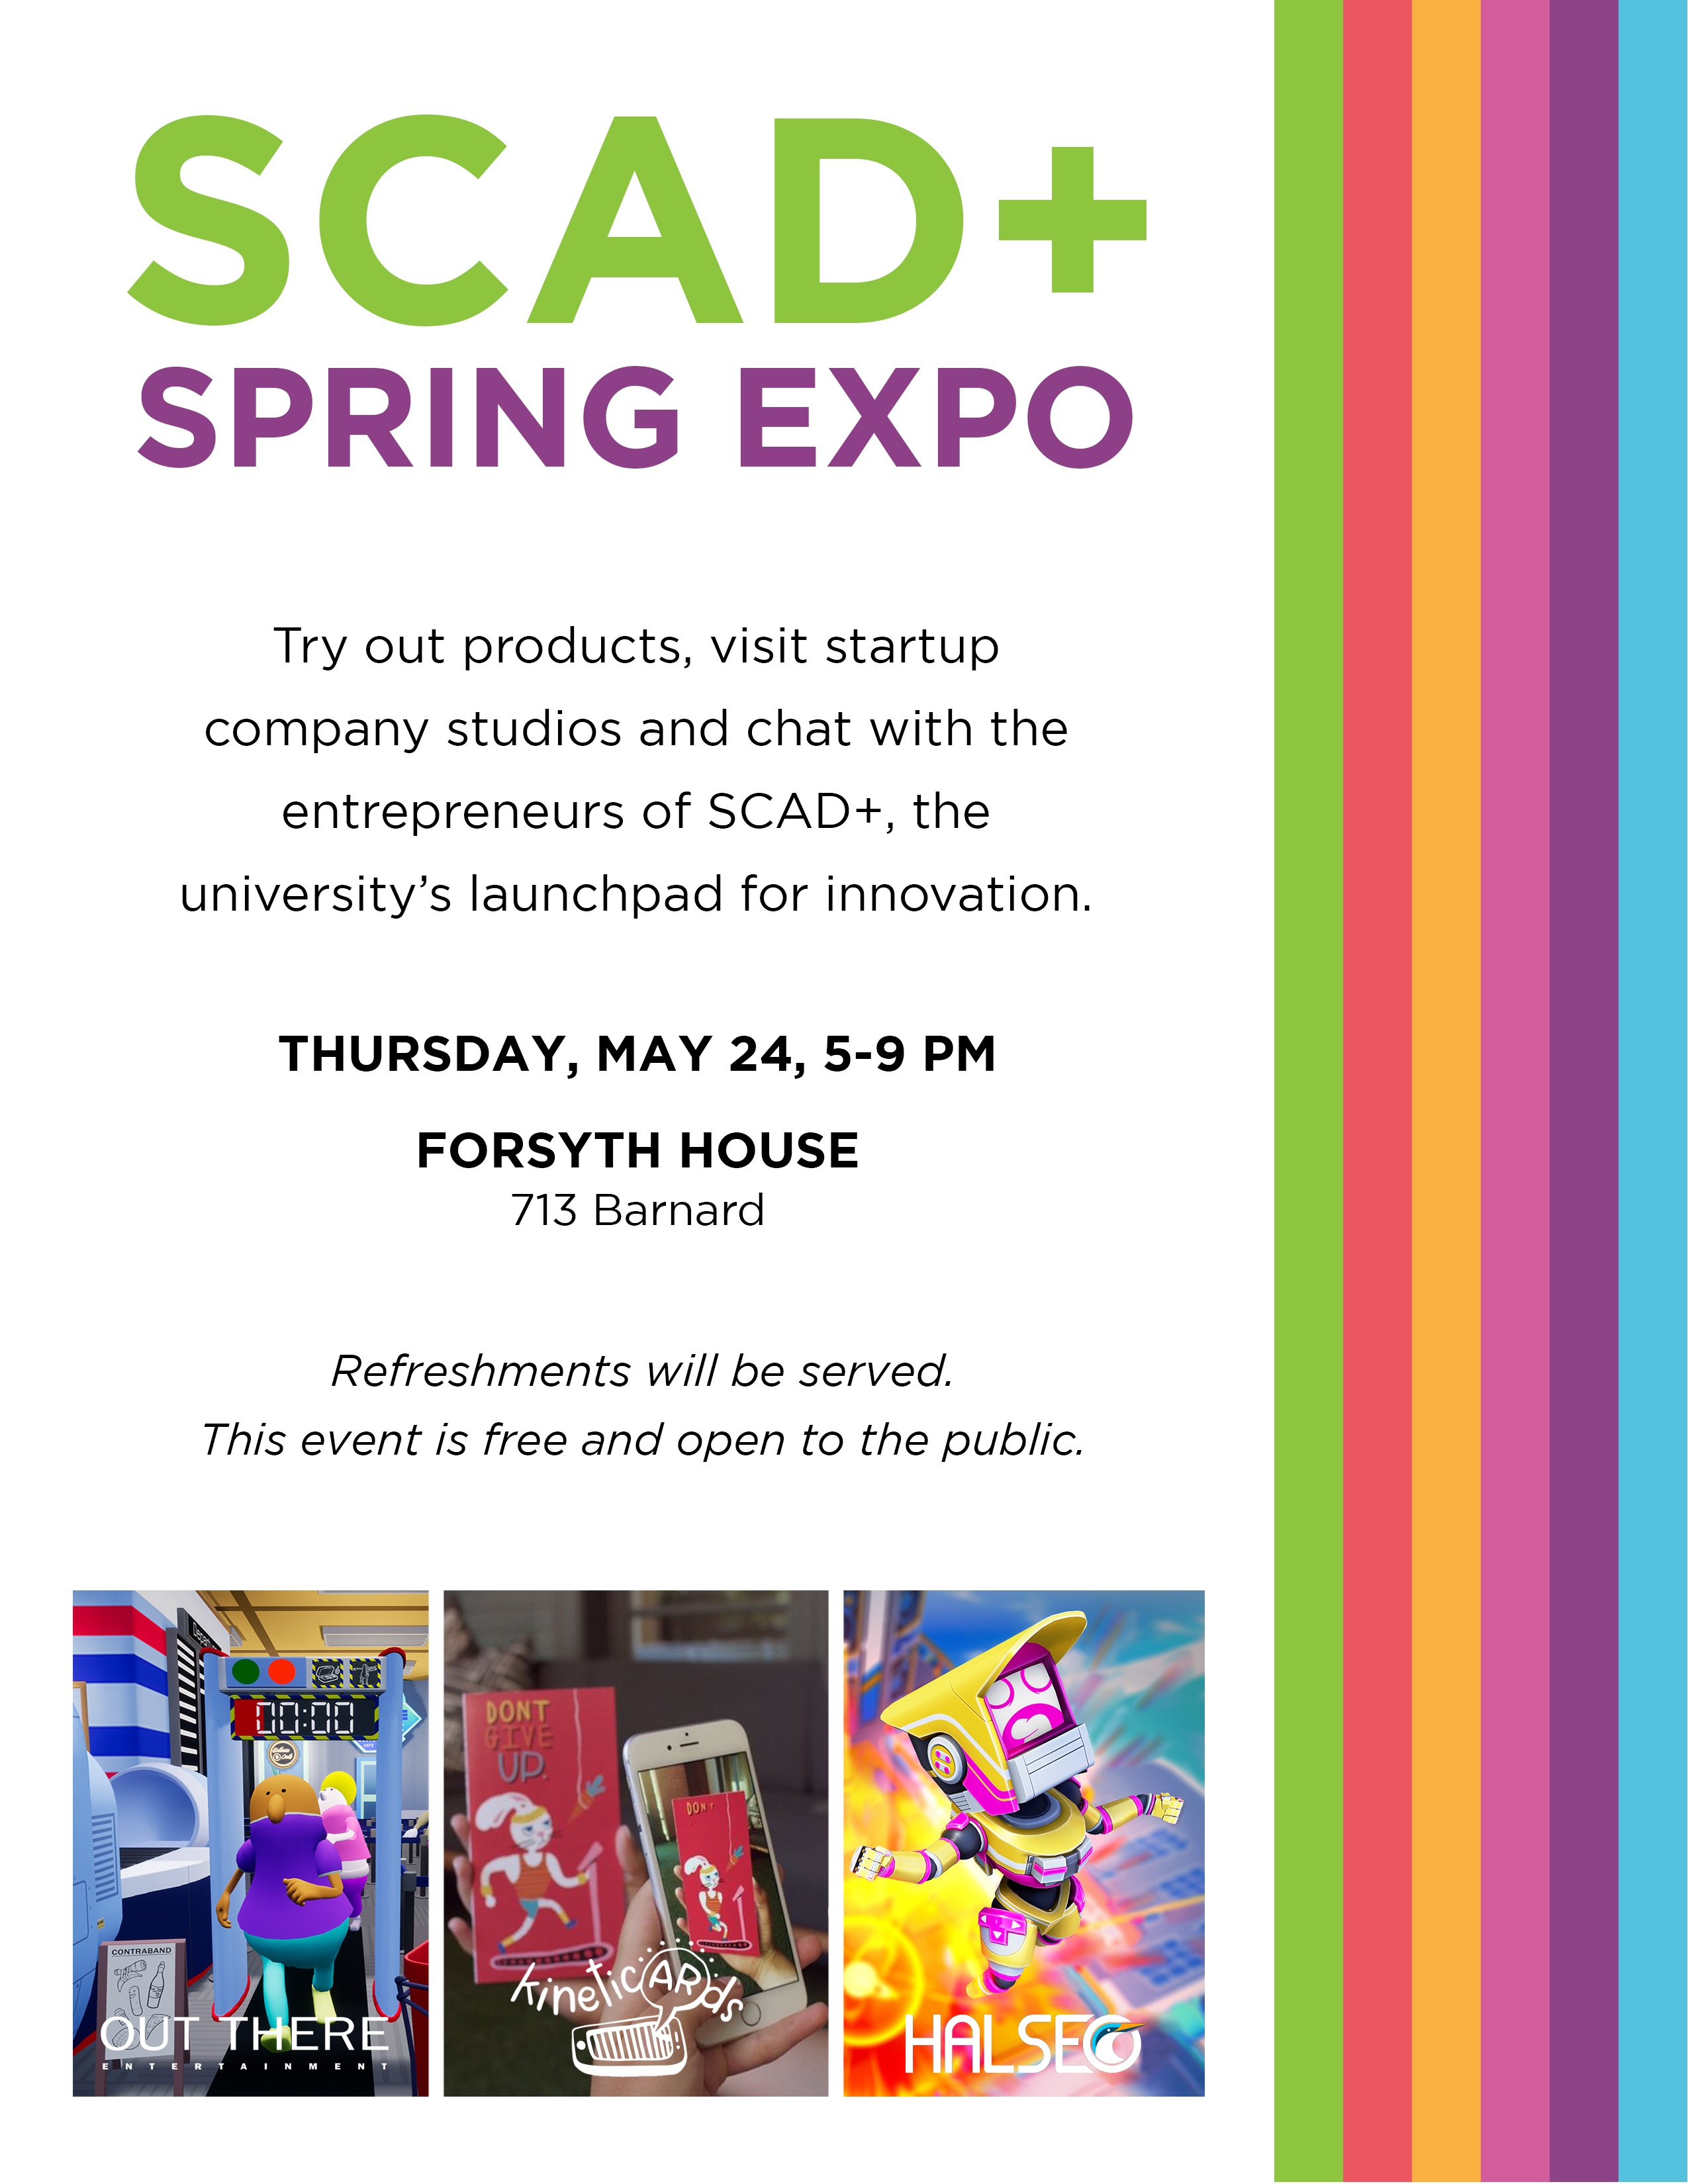 SCAD+ Spring Expo